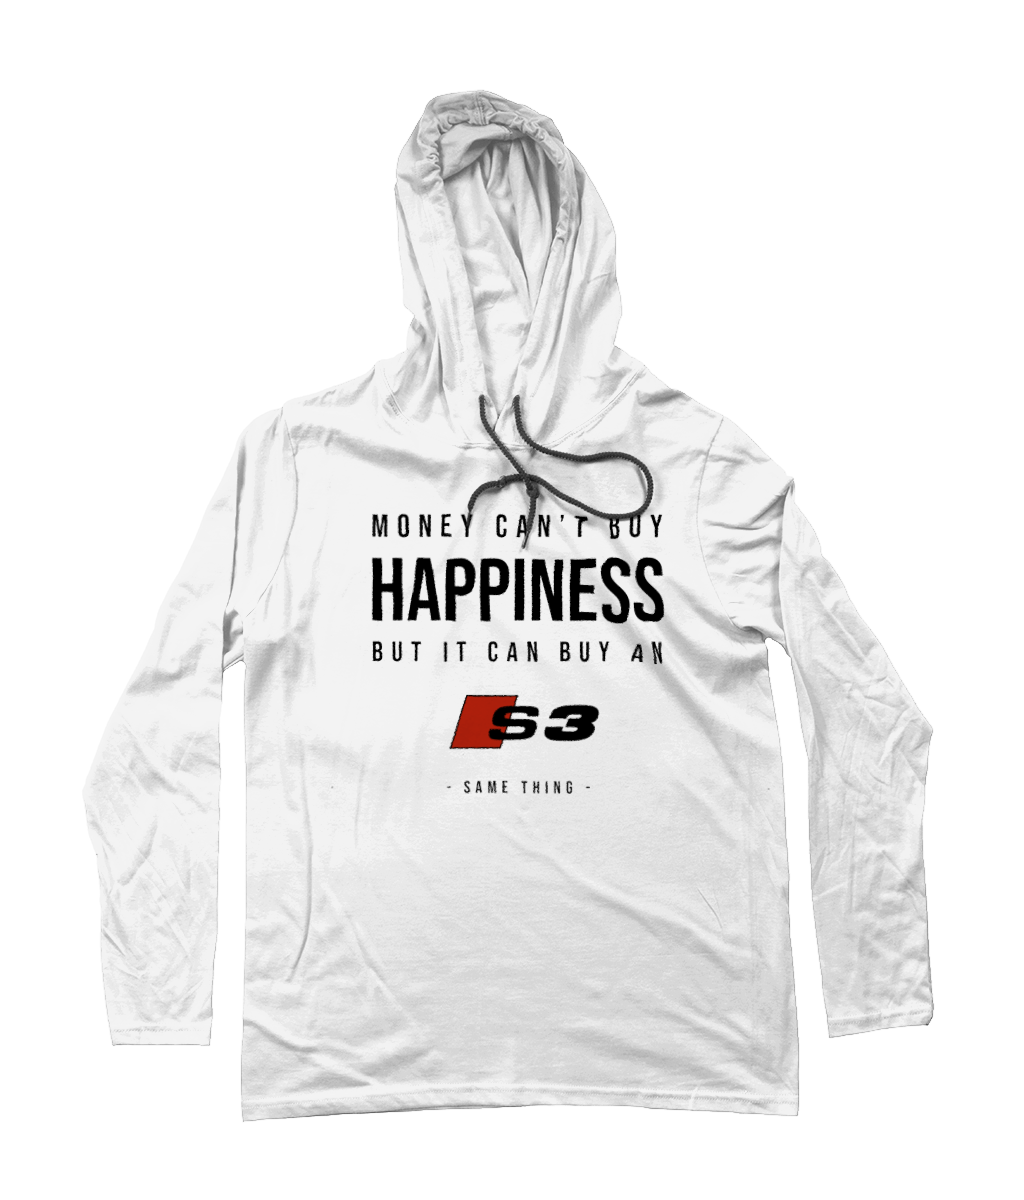 Happiness Hooded T-Shirt - Audi S3 (Alternative)